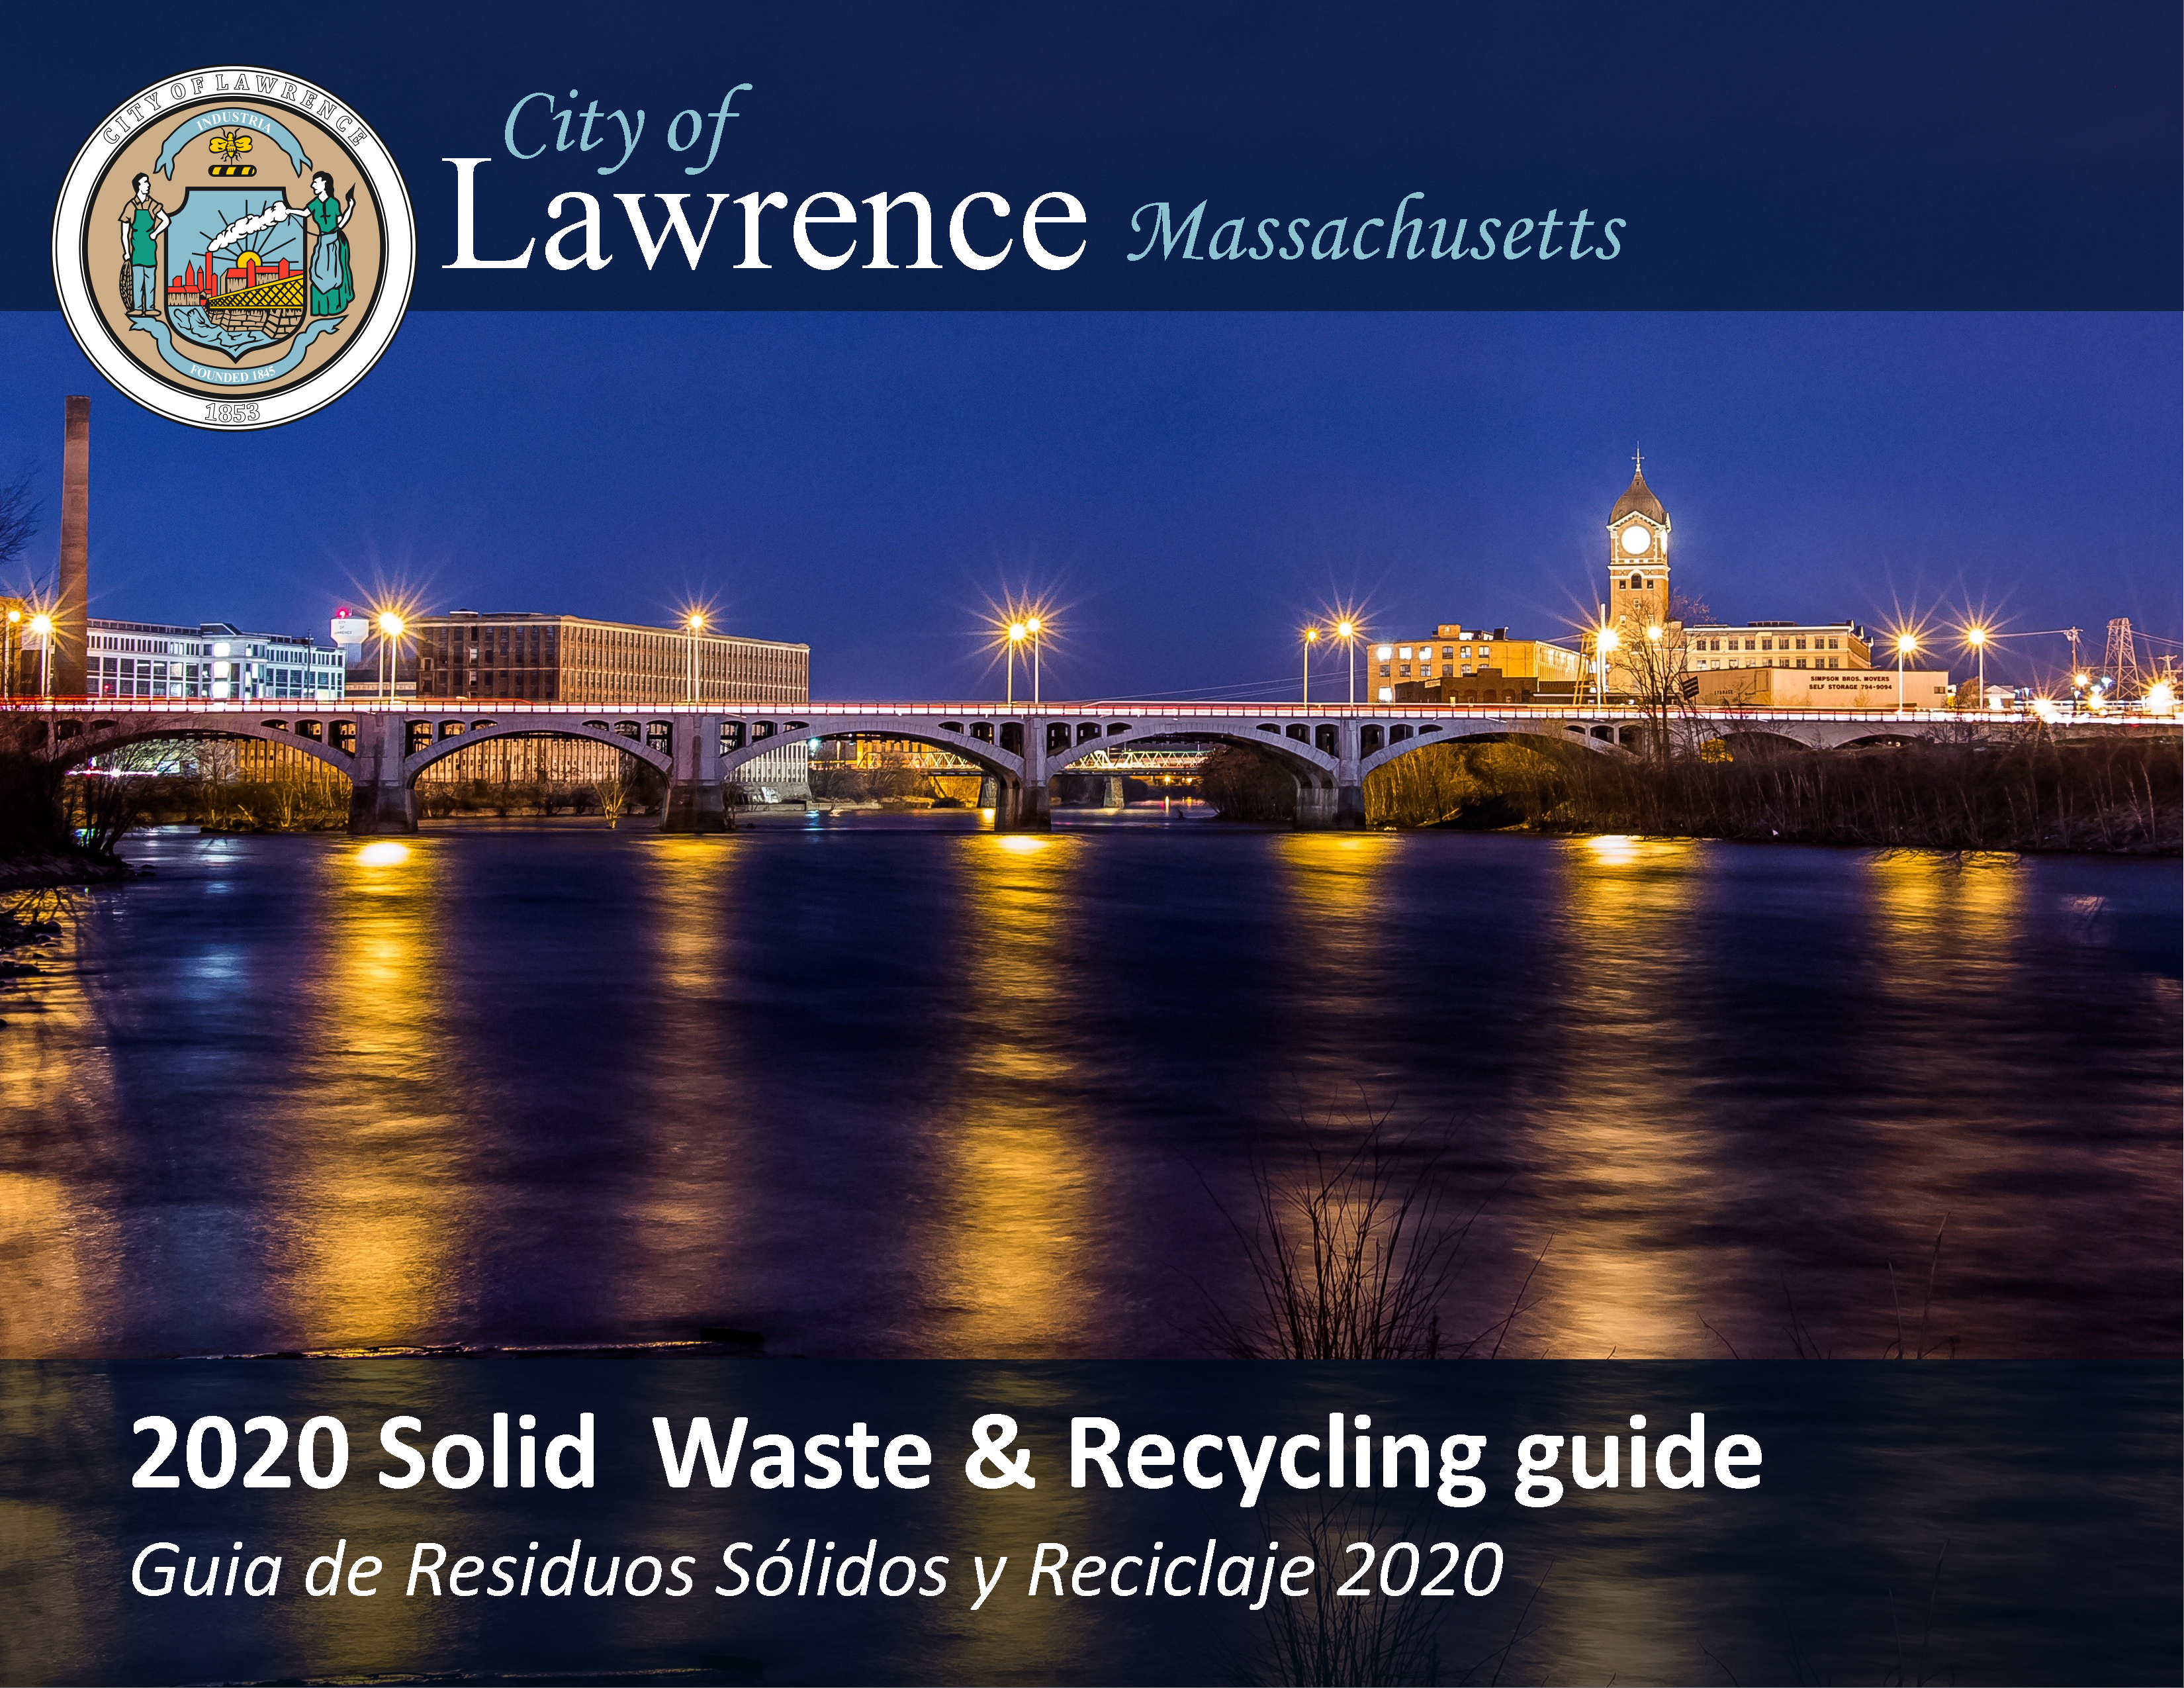 2020 Solid Waste and Recycling Guide - Guia de Residuos Solidos y Reciclaje